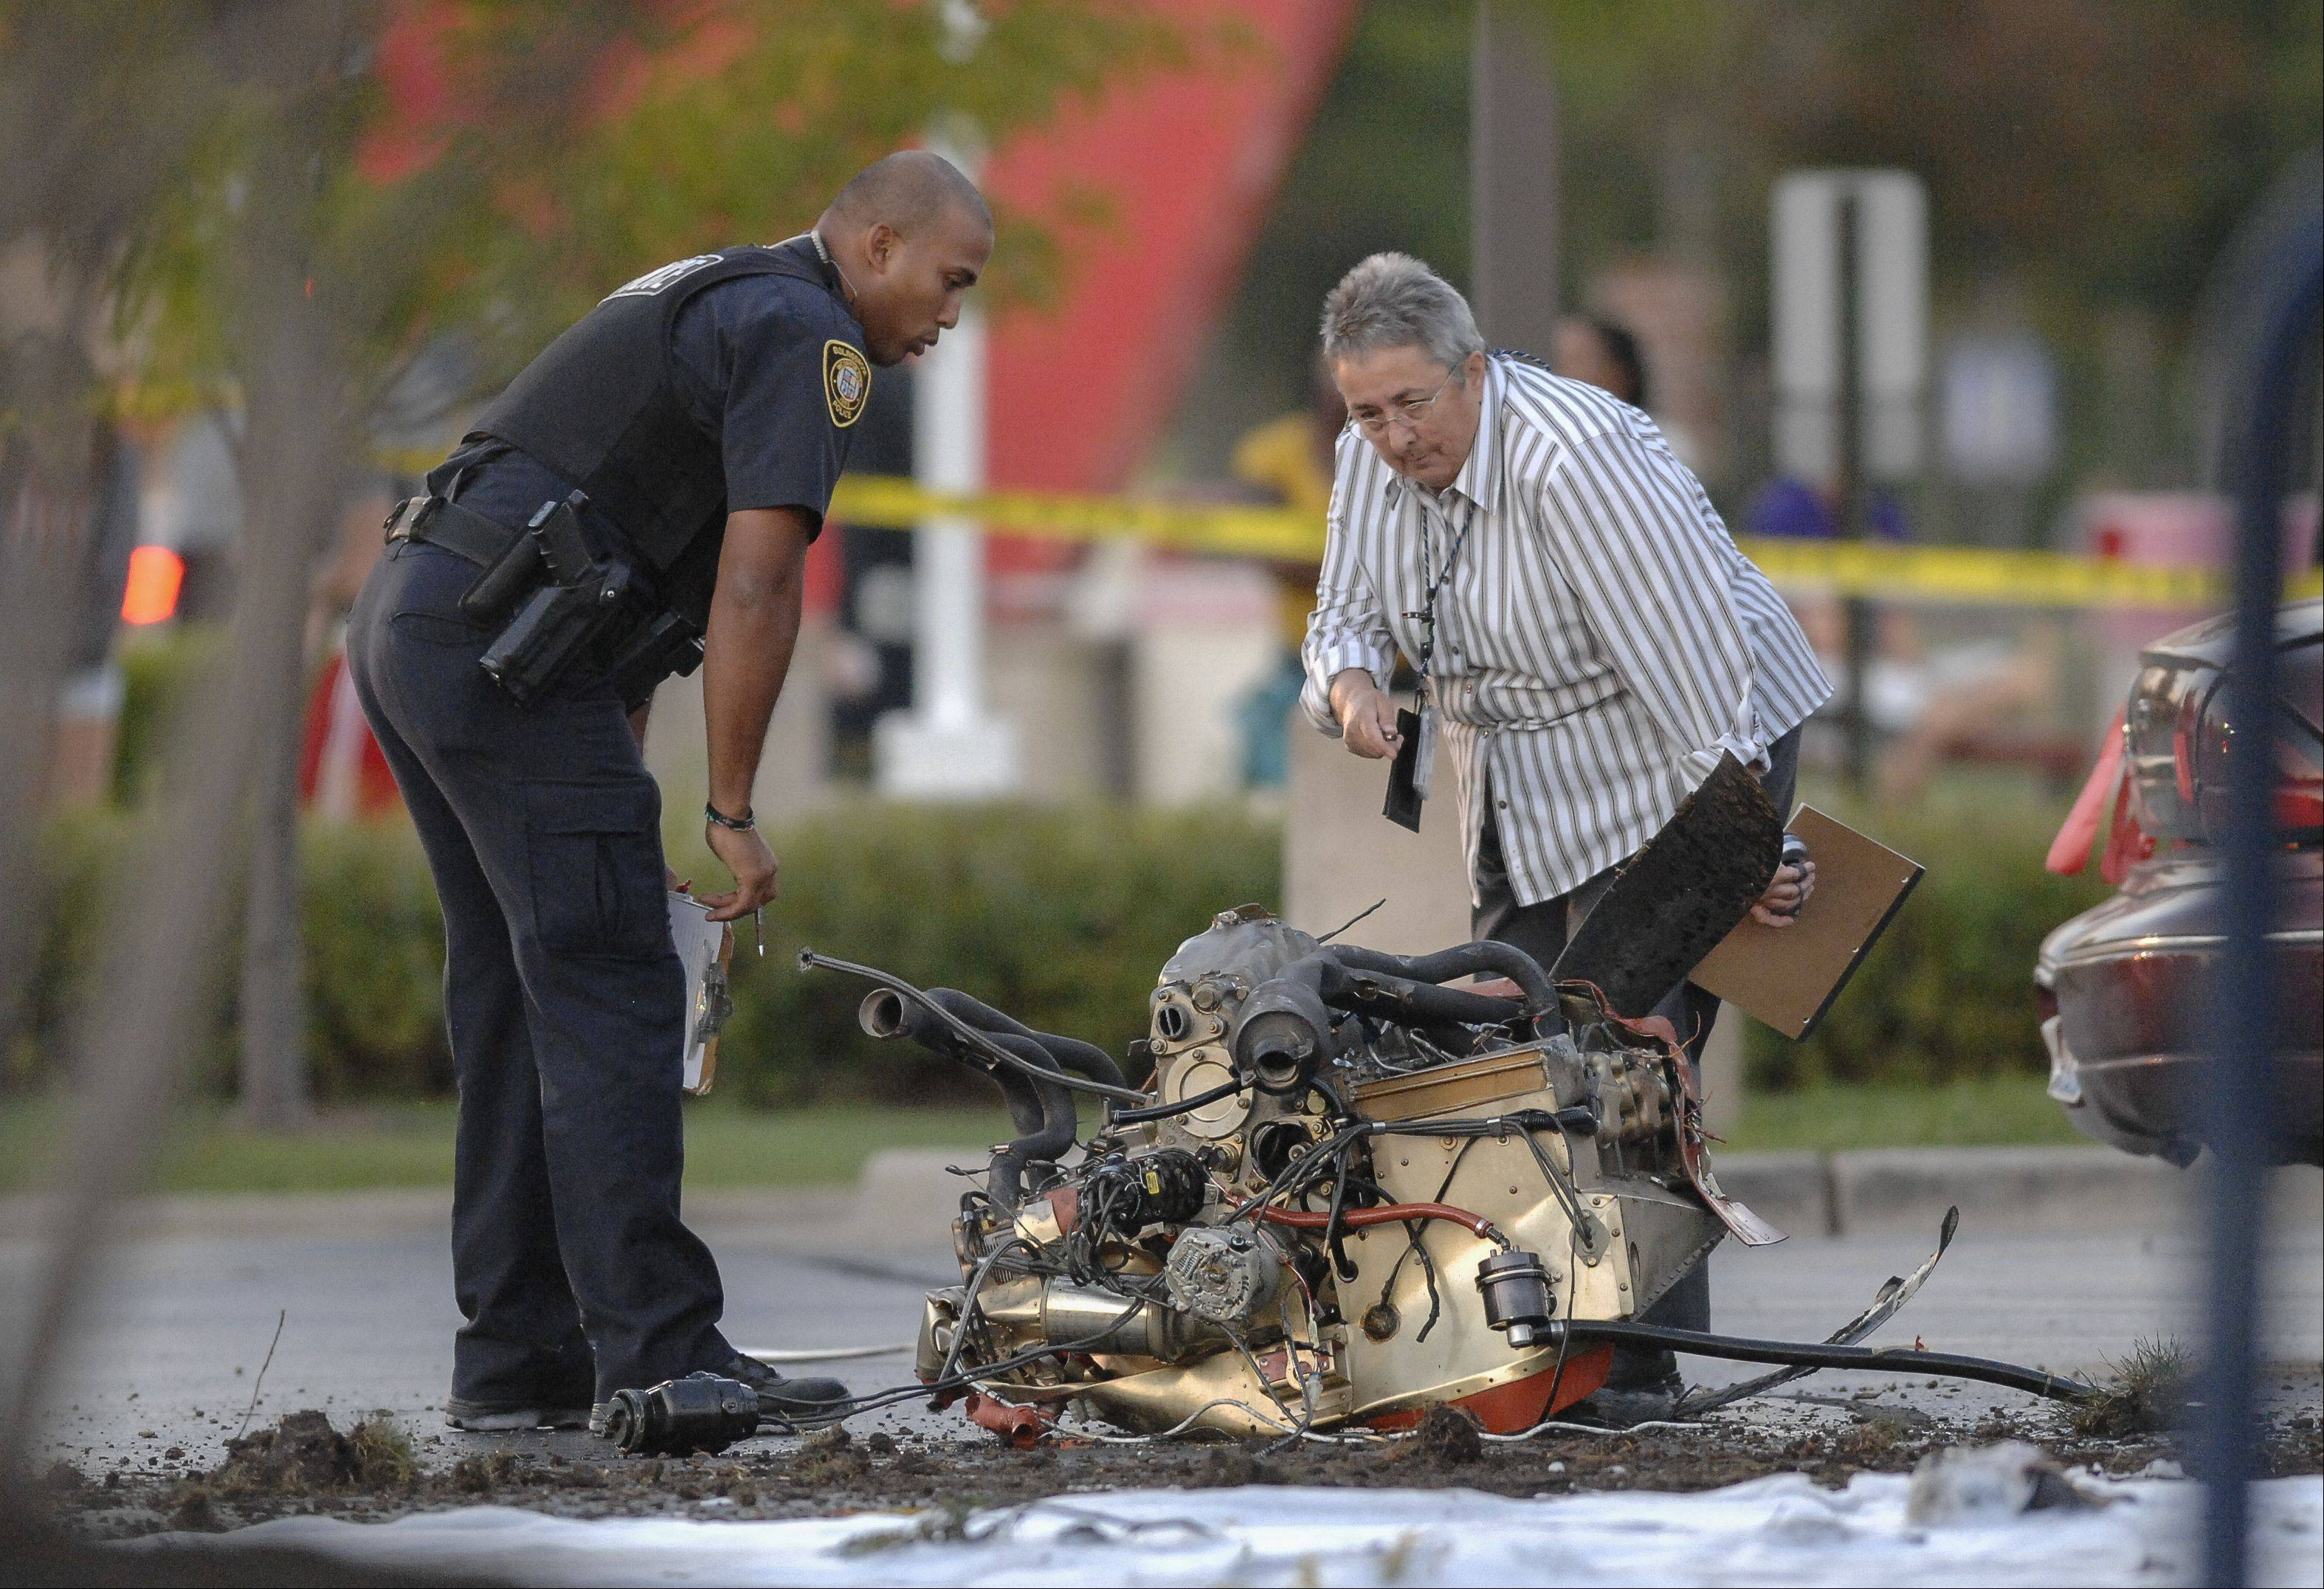 Investigators examine the site of a plane crash Wednesday afternoon in the parking lot of a Chase bank on Weber Road near Clow International Airport in Bolingbrook.